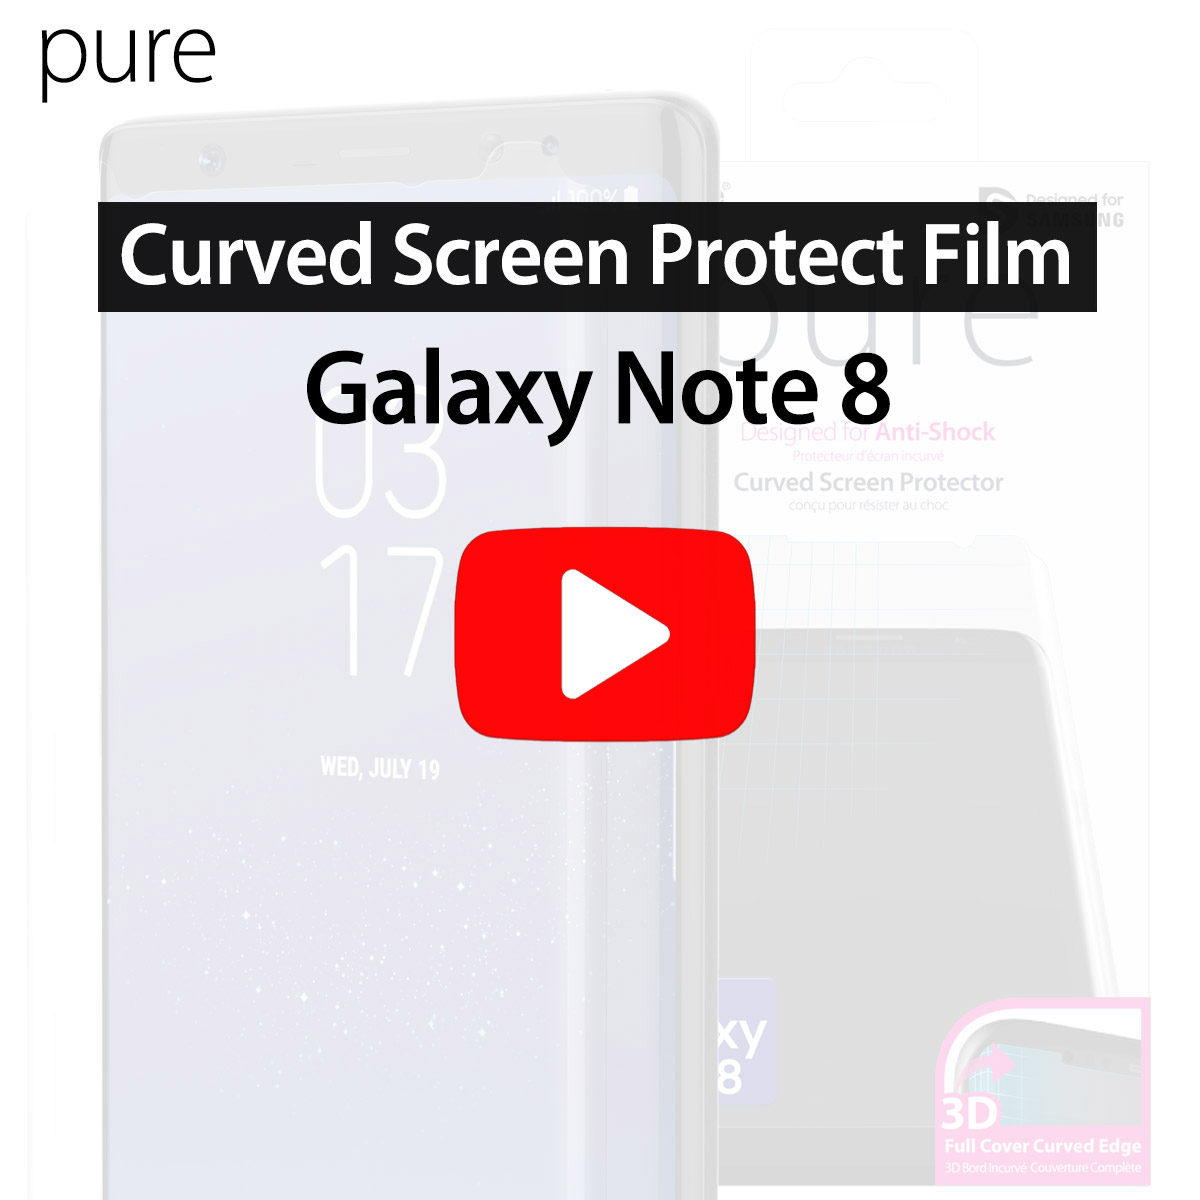 Galaxy Note8/Note9]Curved Screen Protector Film Install Guide